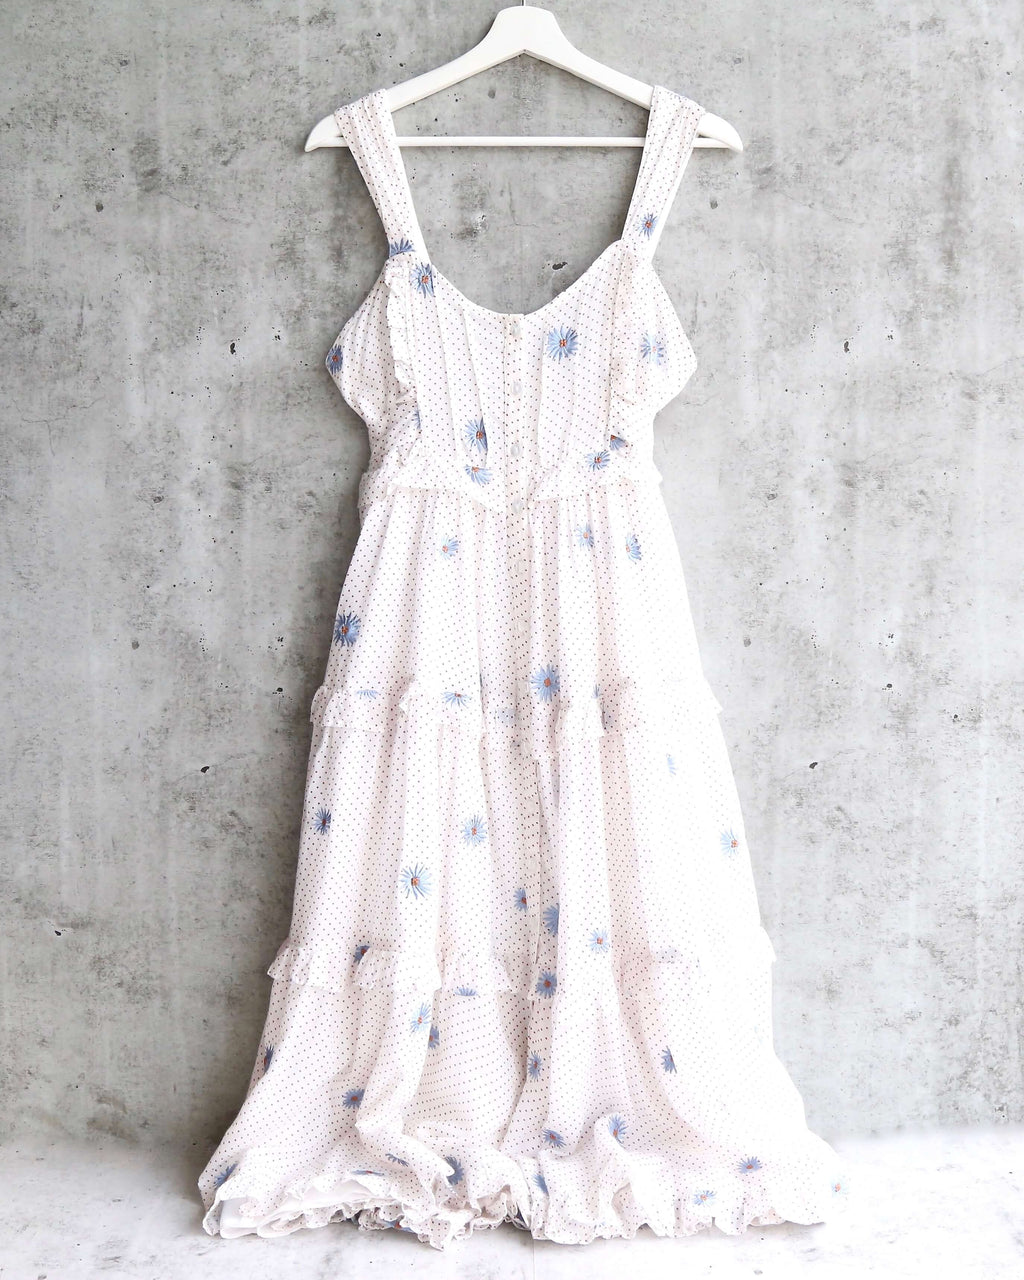 Free People Daisy Chain Button Up Midi Dress in White / Ecru Combo